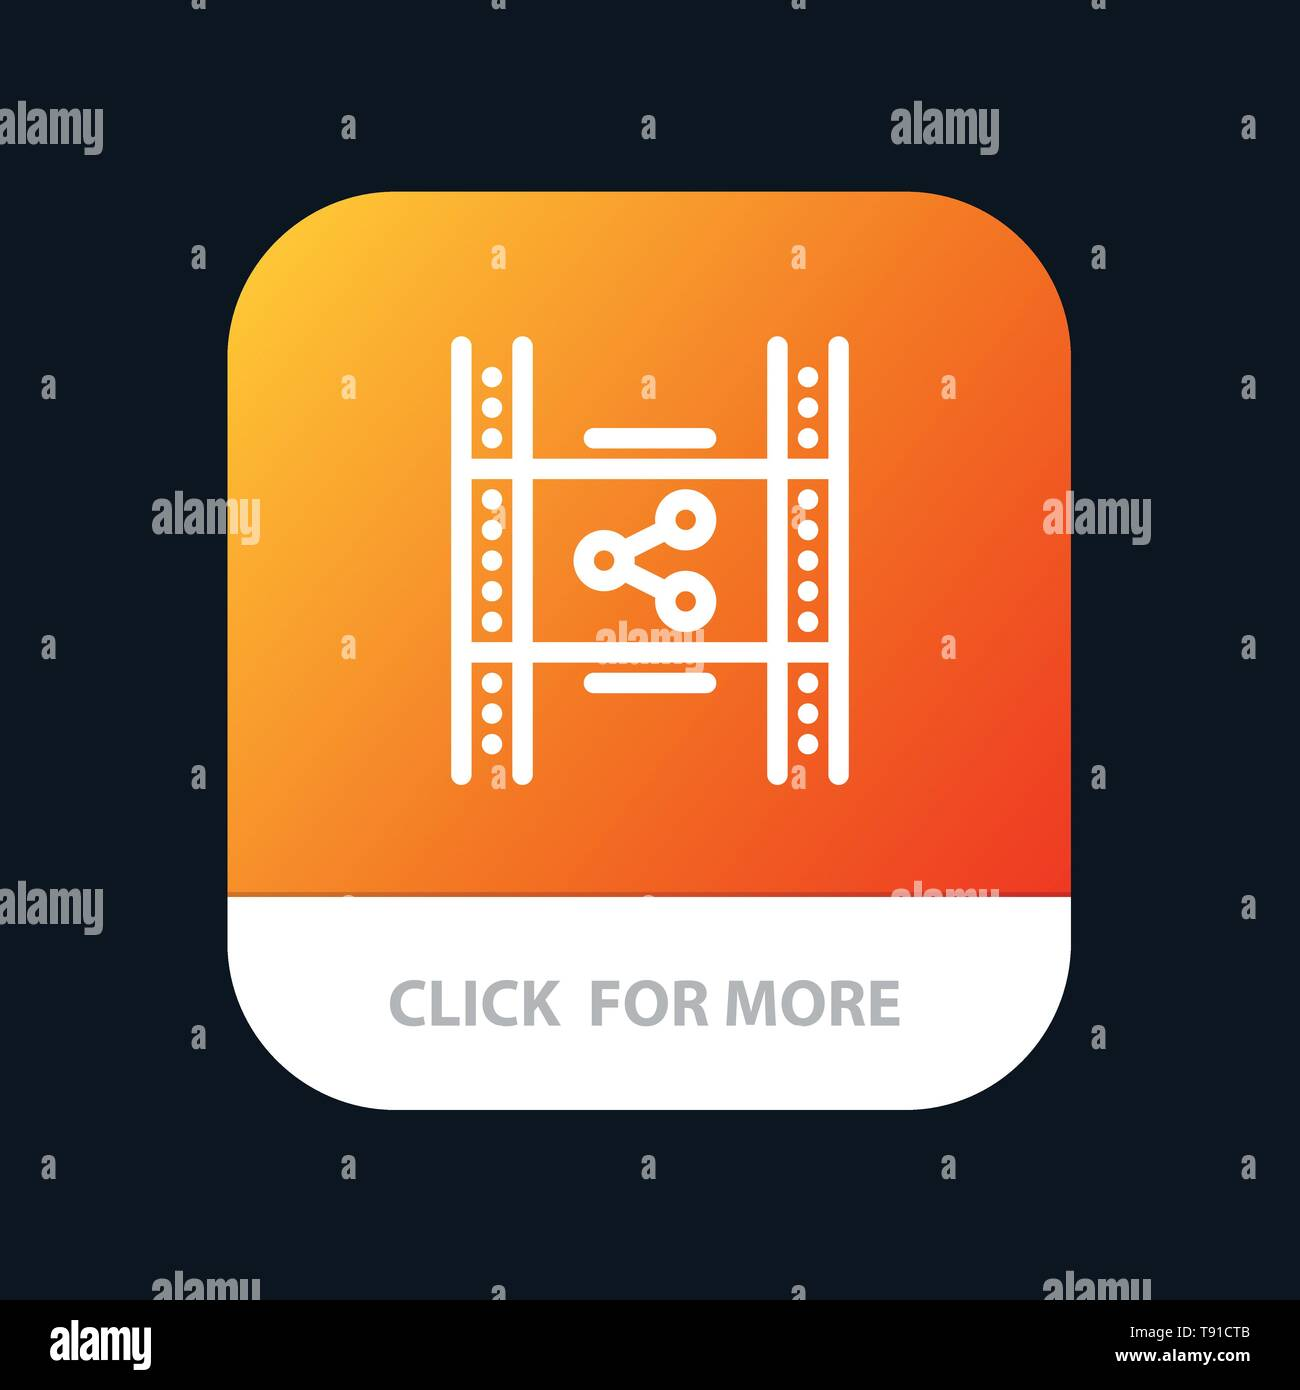 Distribution, Film, Movie, P2p, Share Mobile App Button  Android and